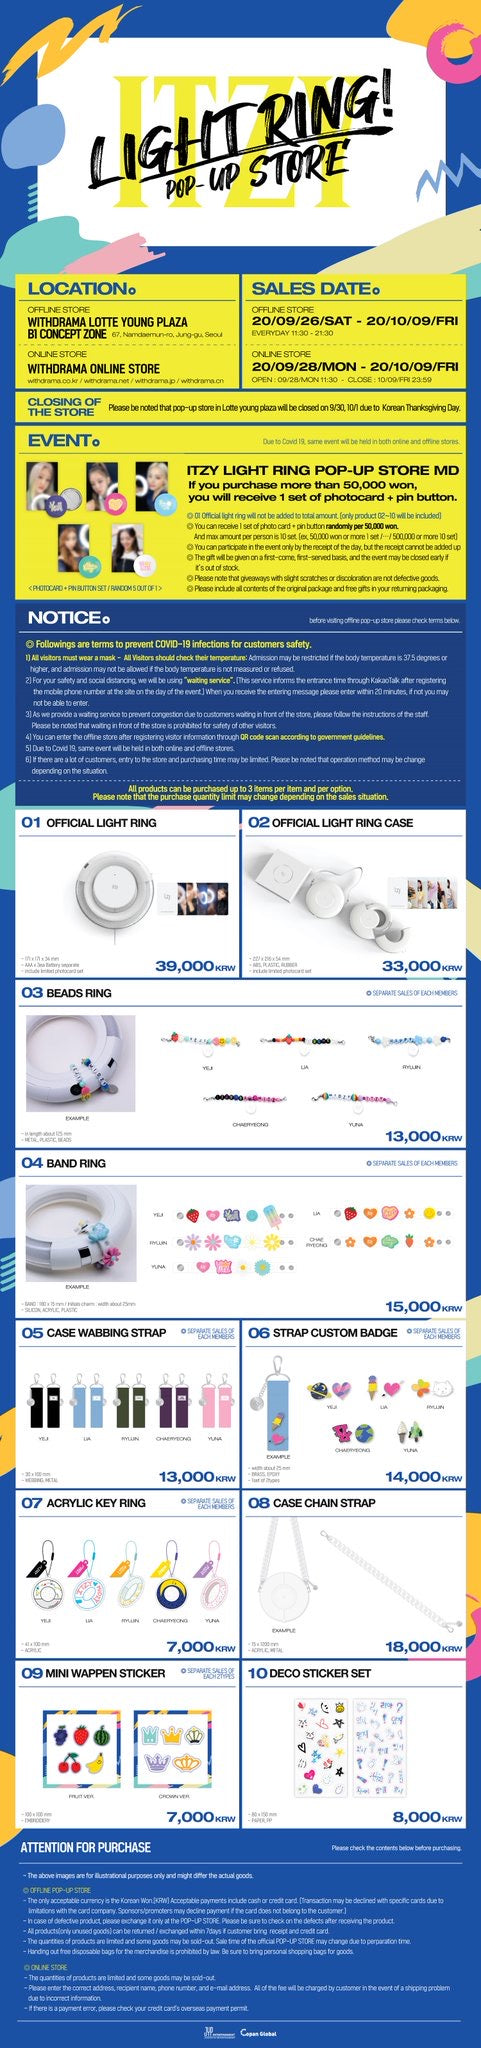 ITZY OFFICIAL LIGHT RING POP-UP STORE GOODS